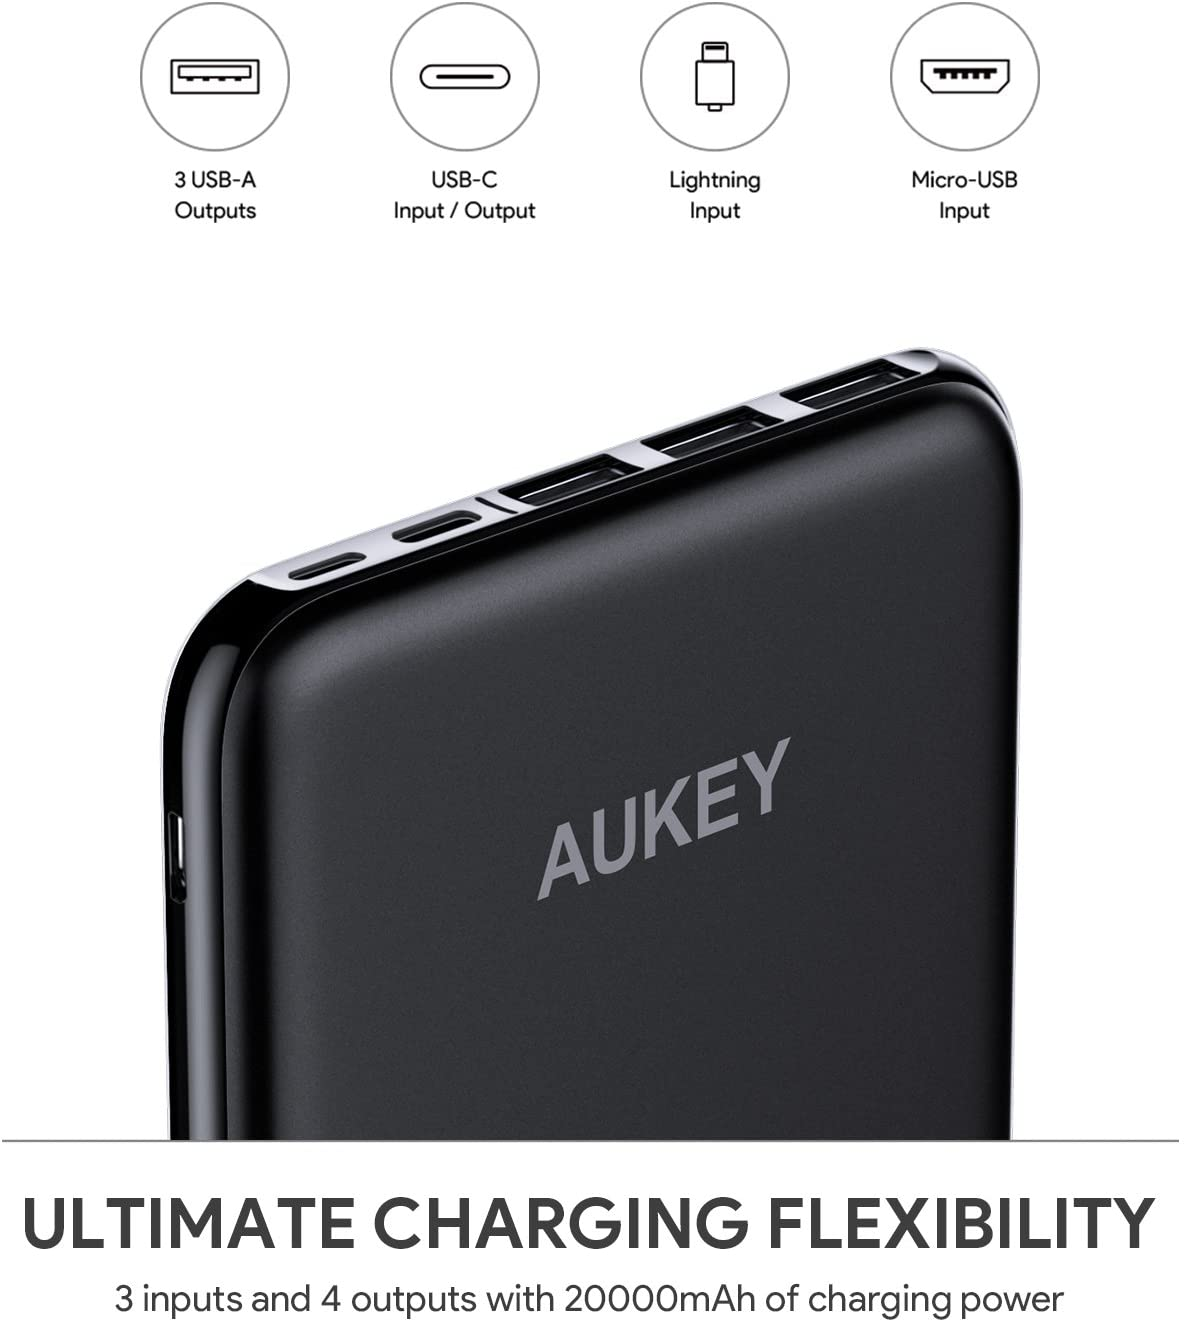 AUKEY 20000mAh USB-C Power Bank Review